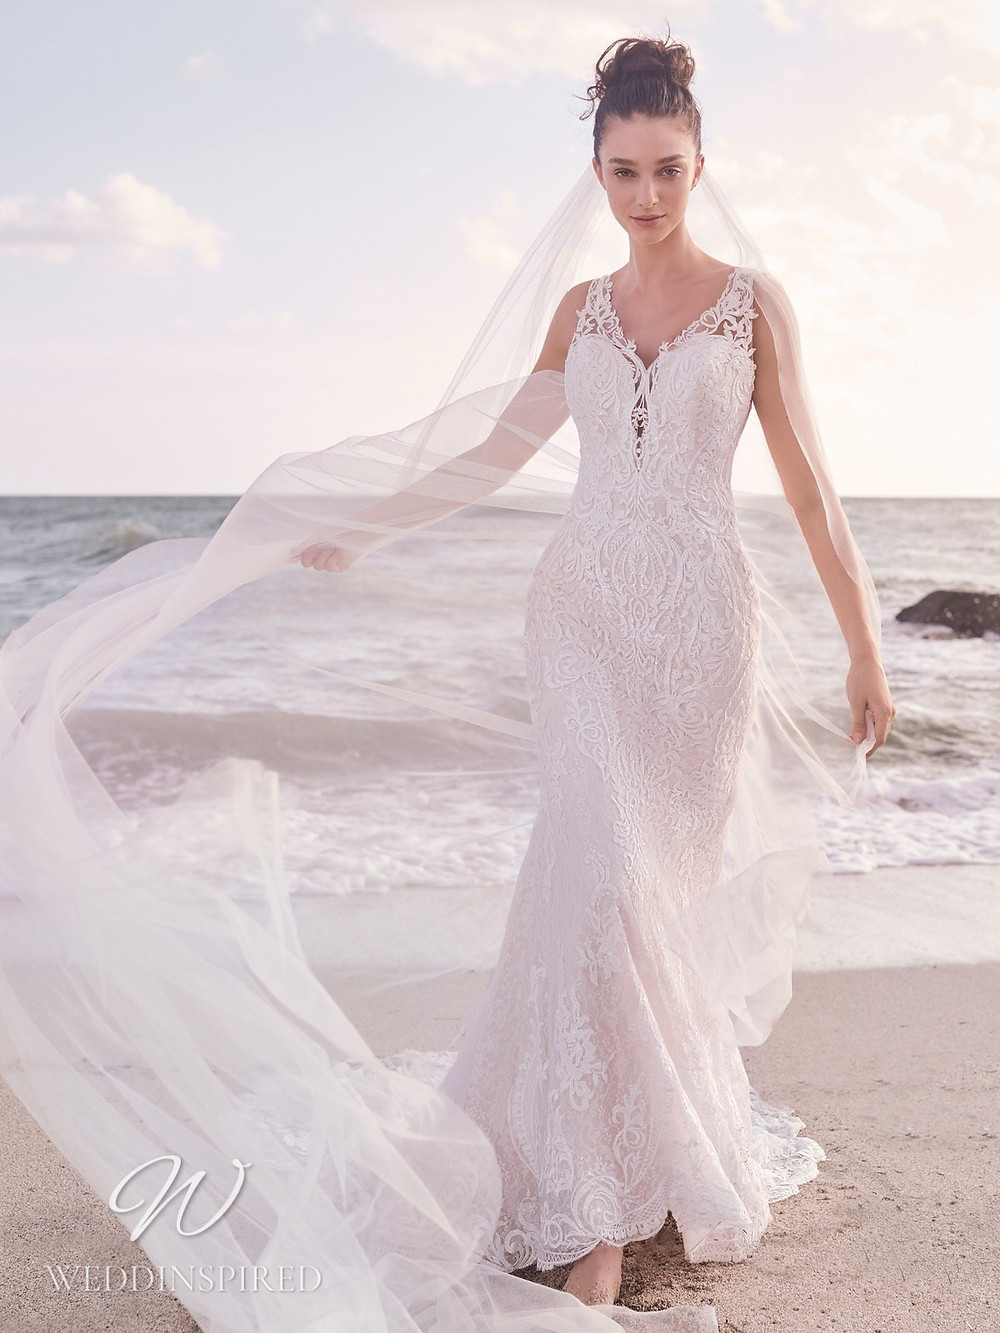 A Sottero & Midgley Spring 2021 white lace mermaid wedding dress with a v neck and straps